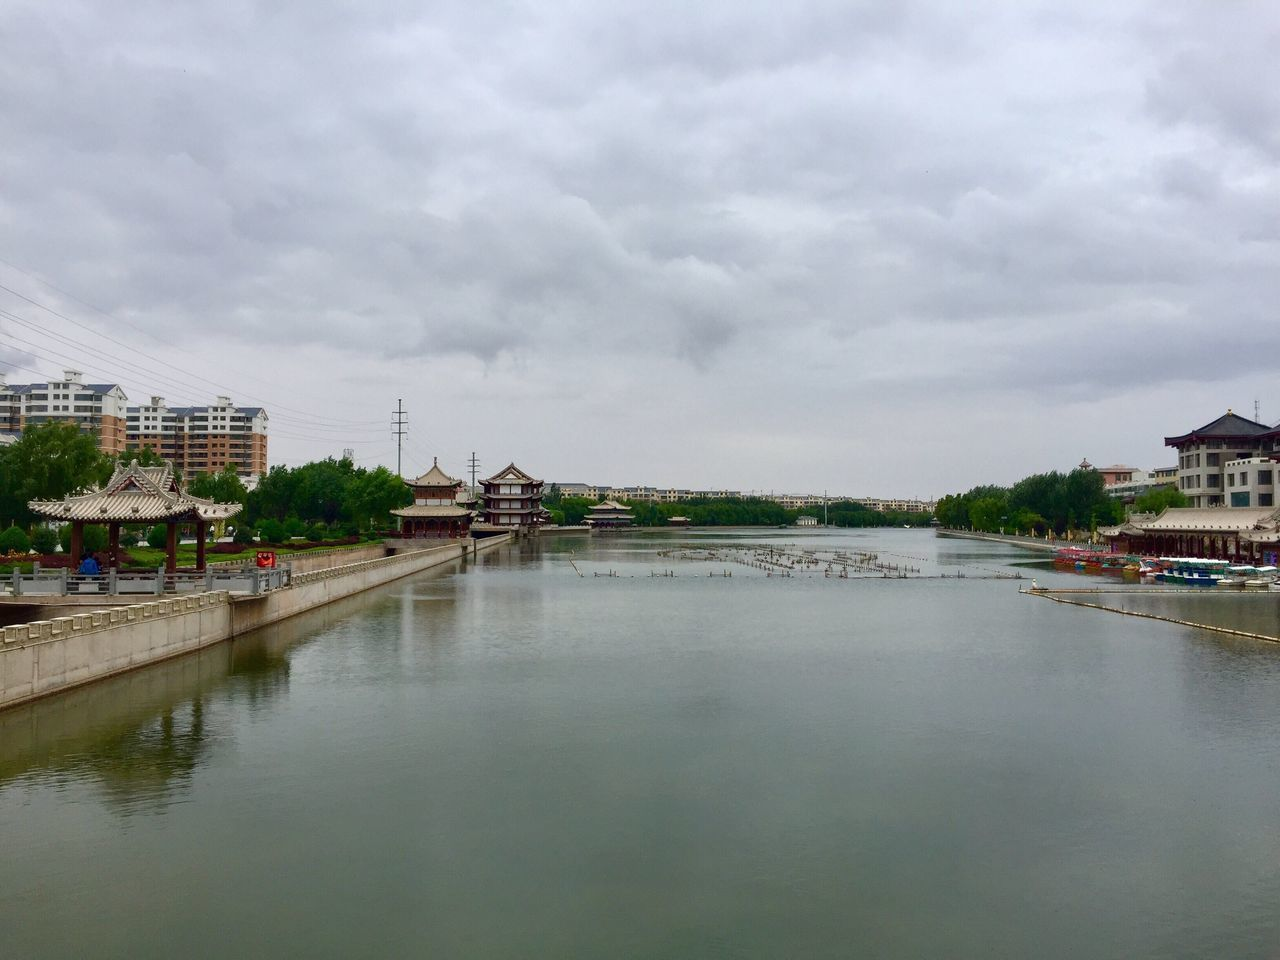 architecture, built structure, water, building exterior, sky, river, cloud - sky, waterfront, day, outdoors, city, no people, town, nature, tree